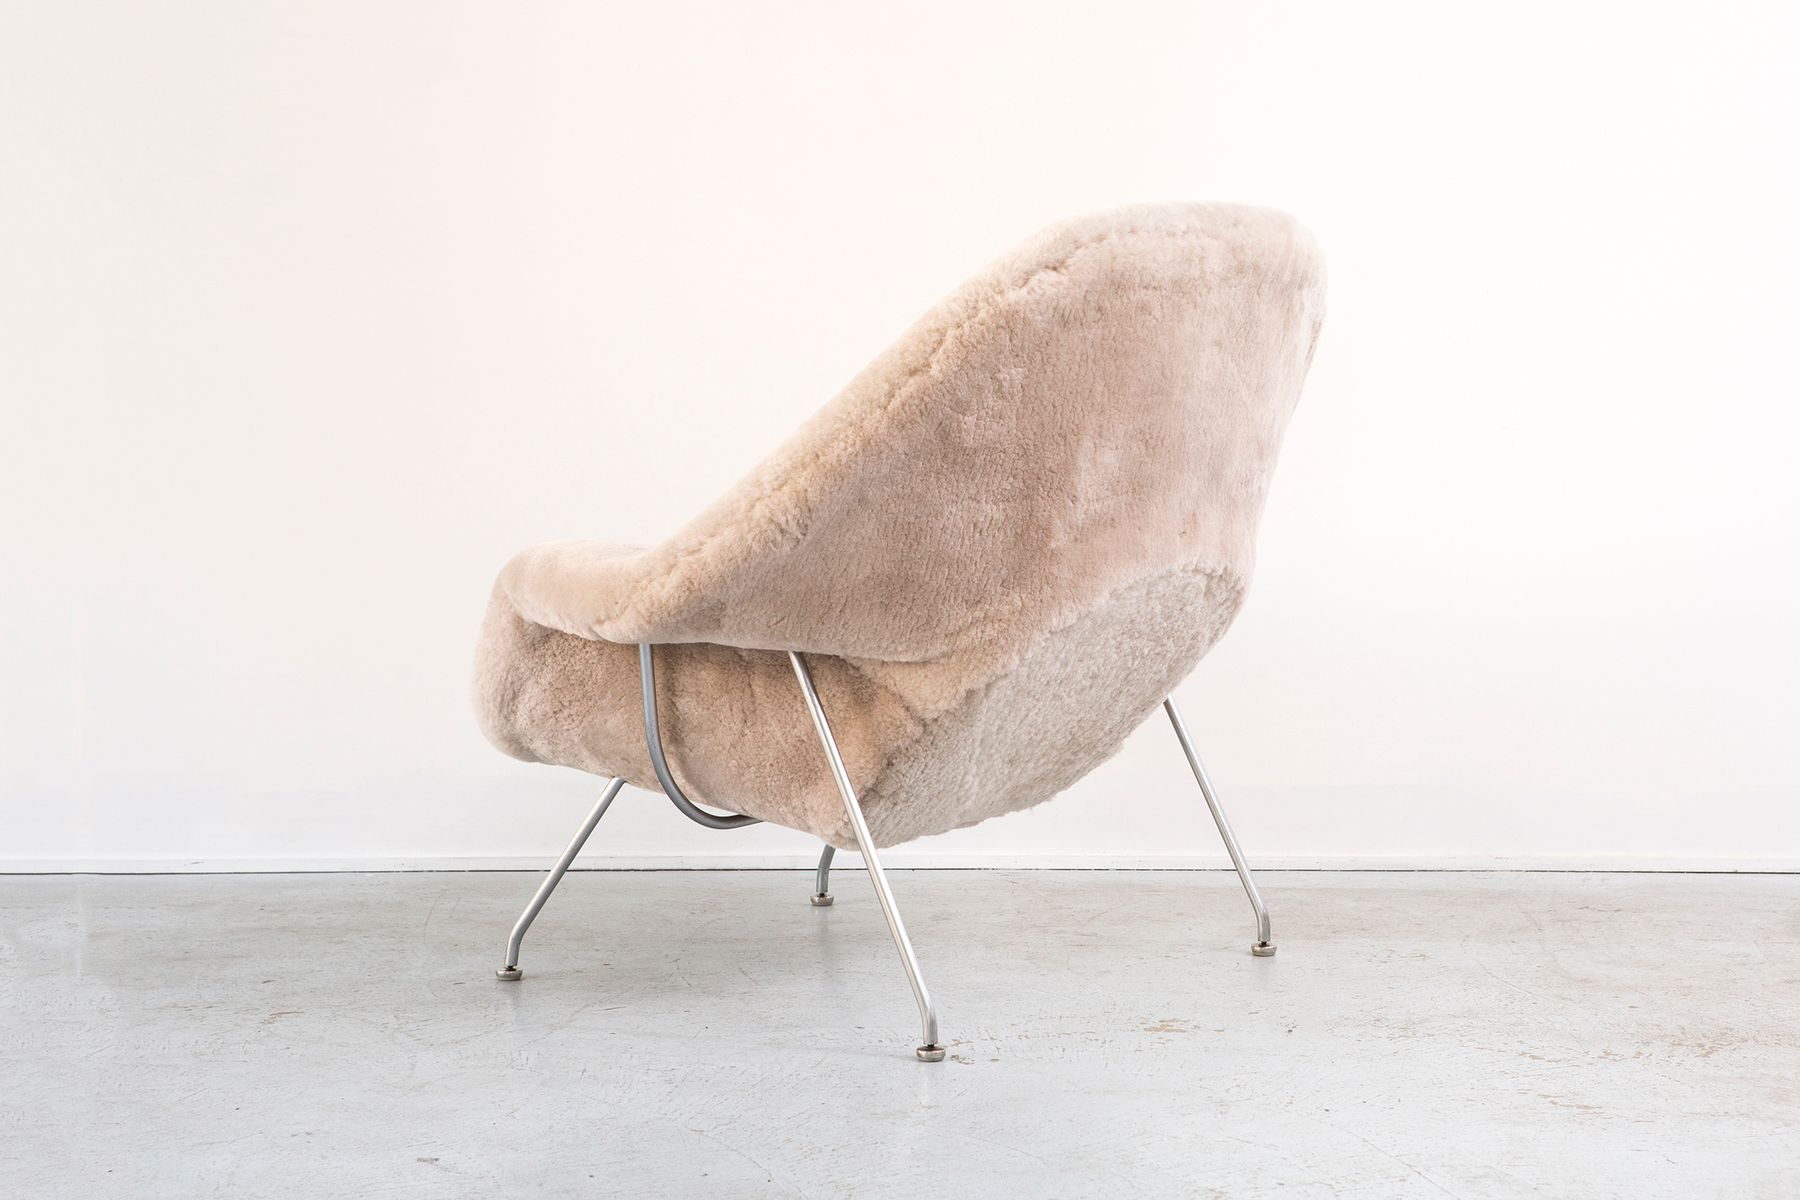 Womb chair by eero saarinen for knoll 1960s for sale at pamono - Vintage womb chair for sale ...